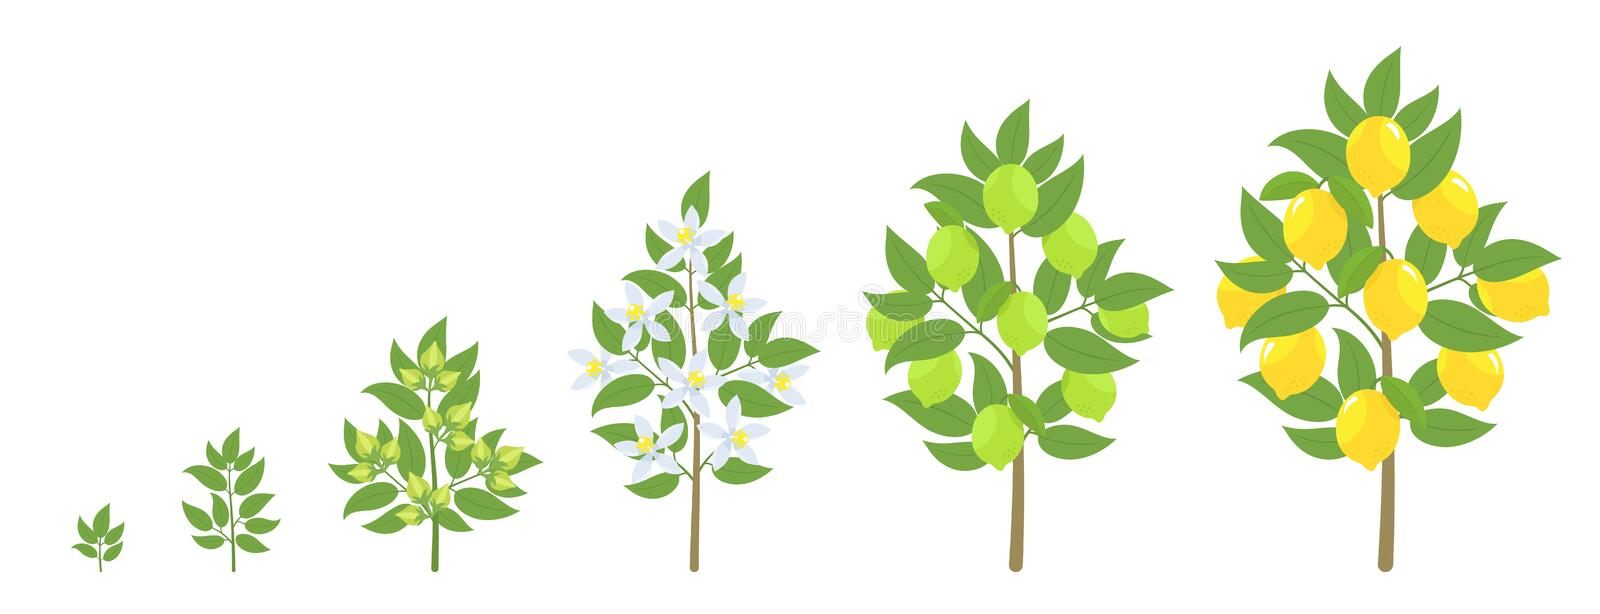 Lemon tree growth stages. Ripening period progression. Fruit tree life cycle animation plant seedling. Lemon increase phases. Lemon tree growth stages. Vector vector illustration